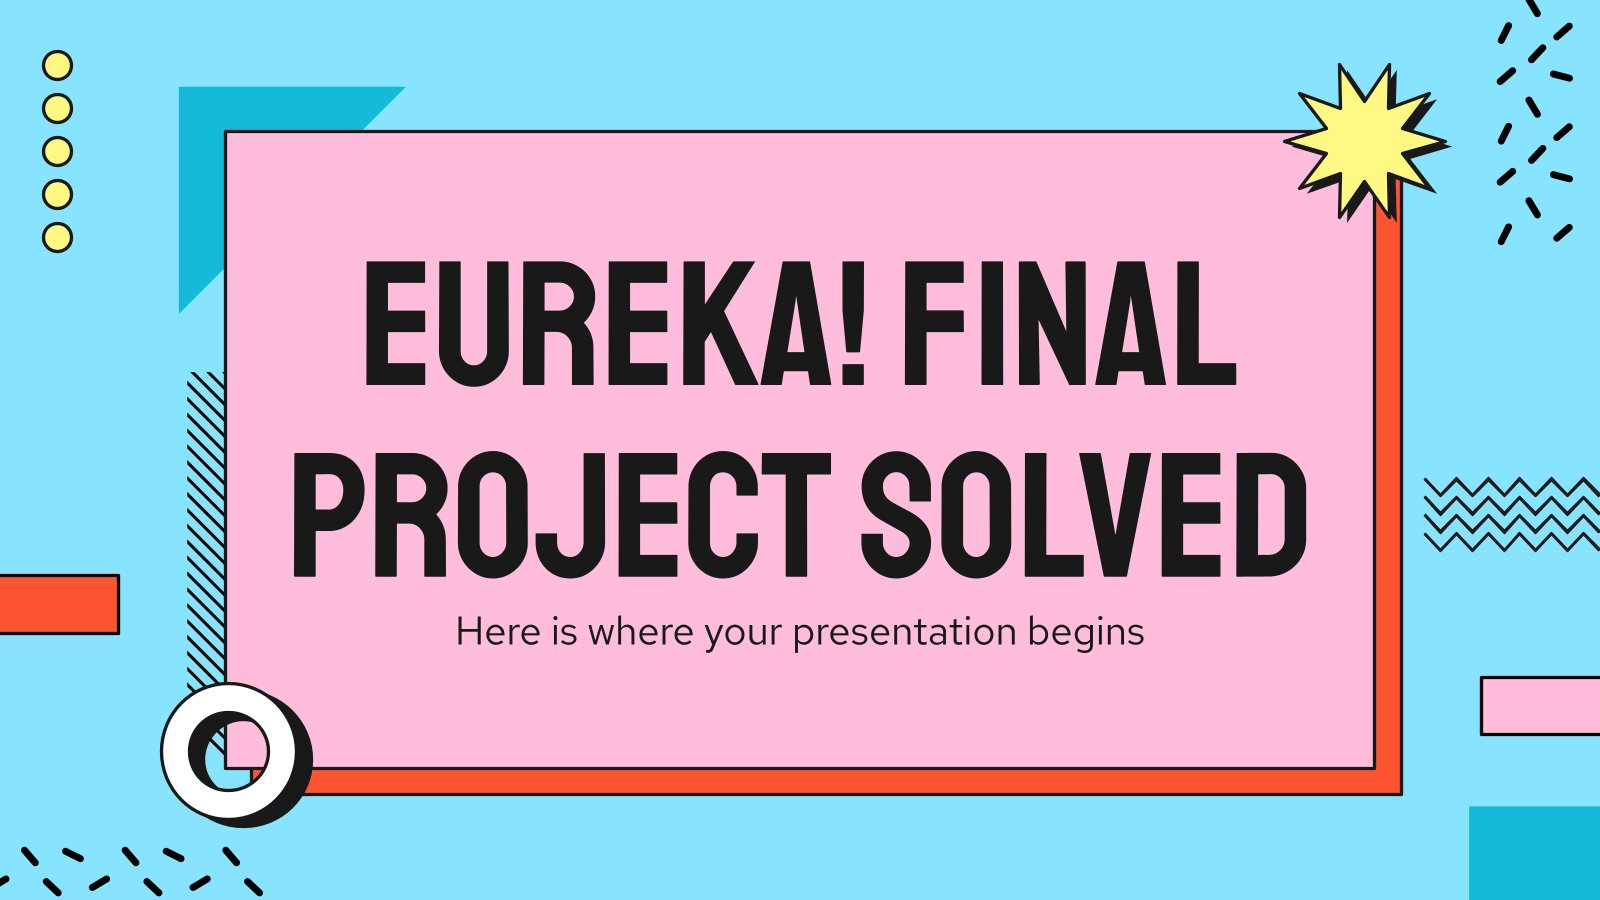 Eureka! Final Project Solved presentation template